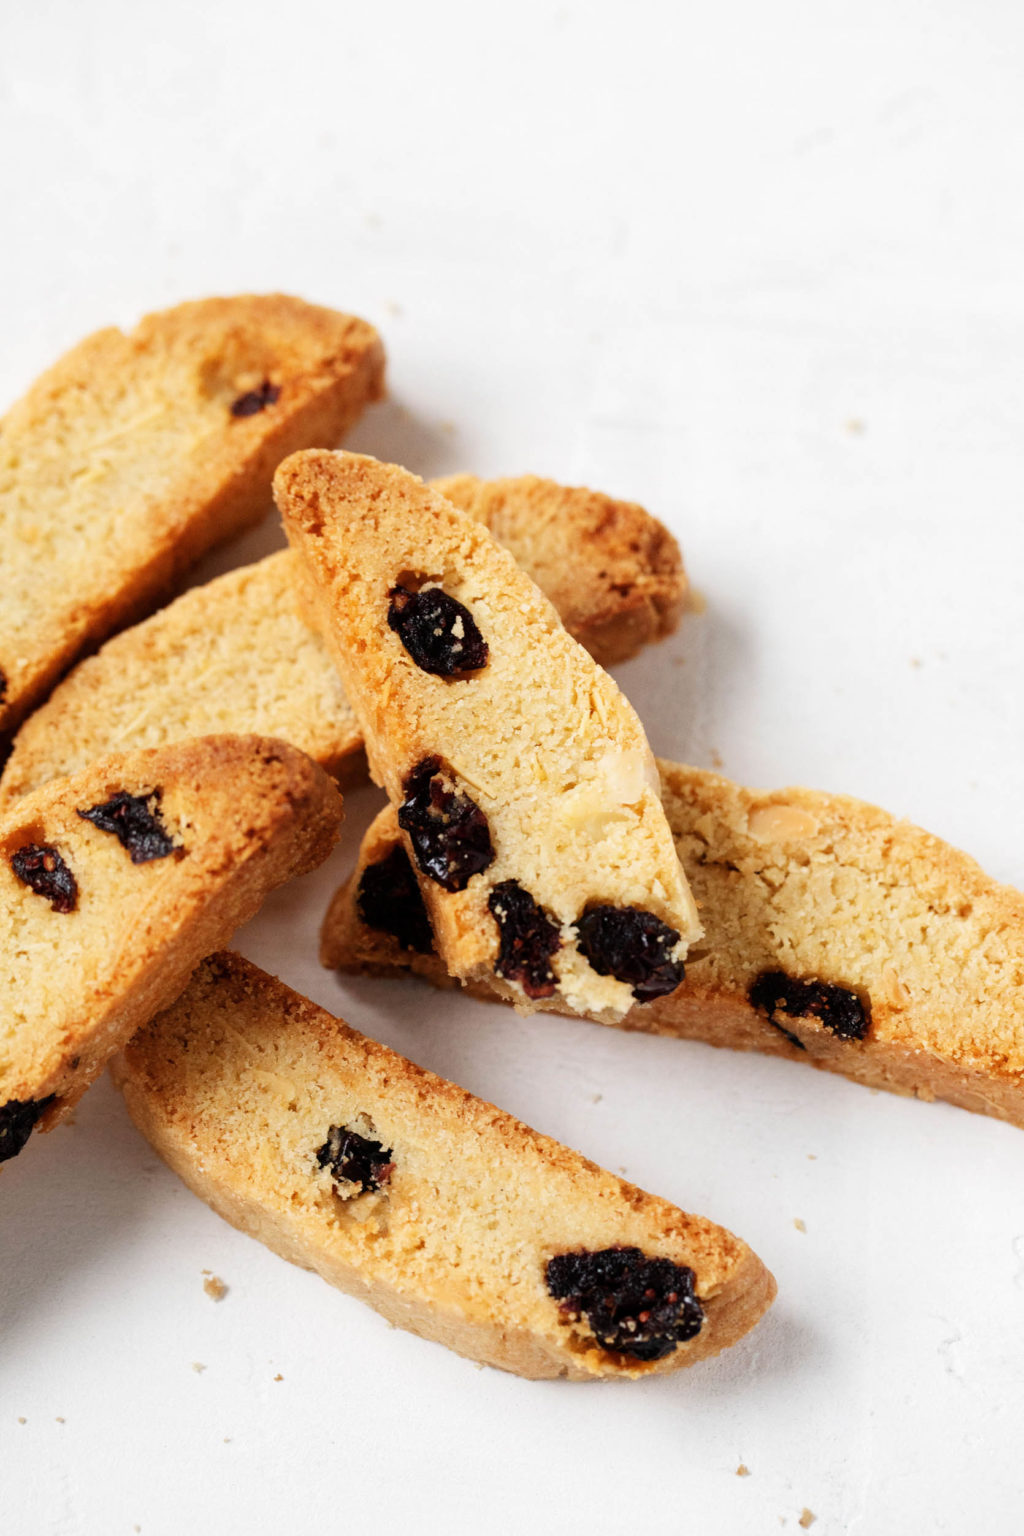 A small pile of vegan biscotti cookies, studded with cranberries.